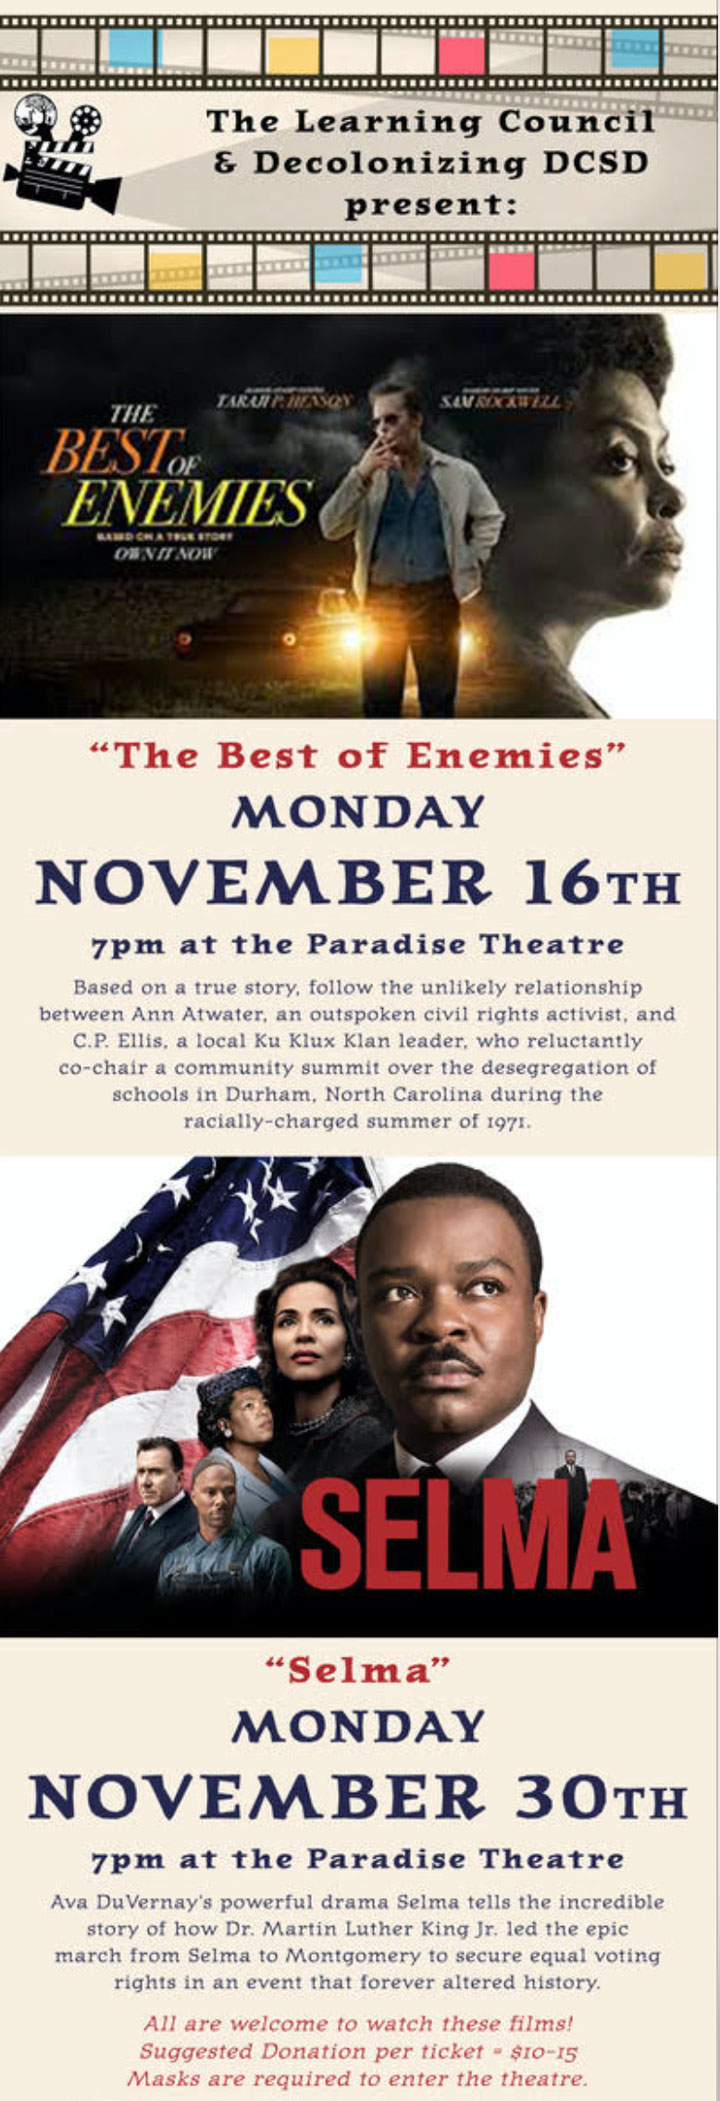 Best of Enemies and Selma poster